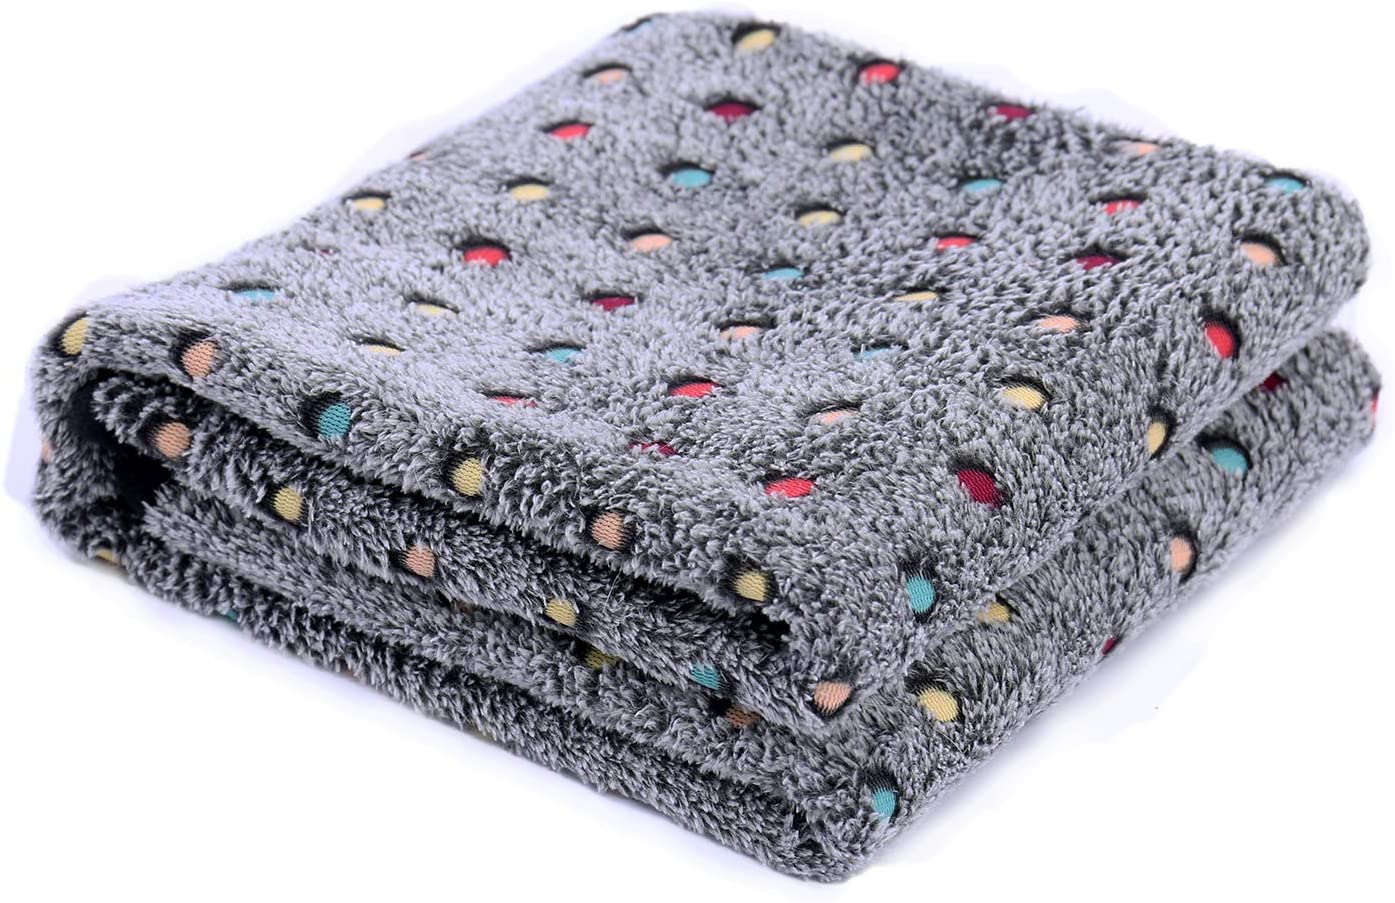 PAWZ Road Pet Dog Blanket Fleece Fabric Soft and Cute 4 Colors 4 Sizes